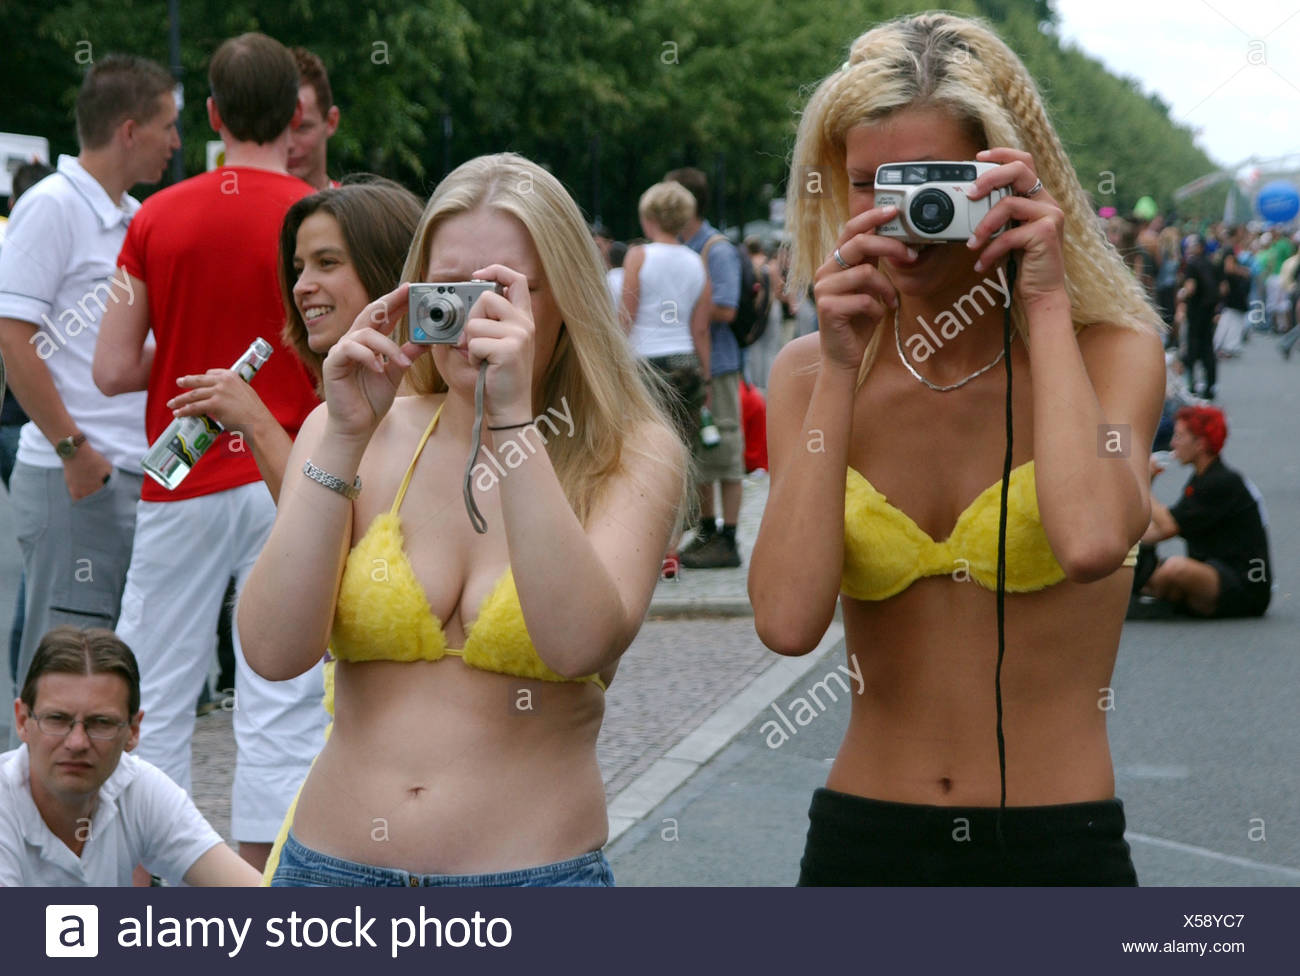 Blondes photographed at the Love Parade 2003 - Stock Image